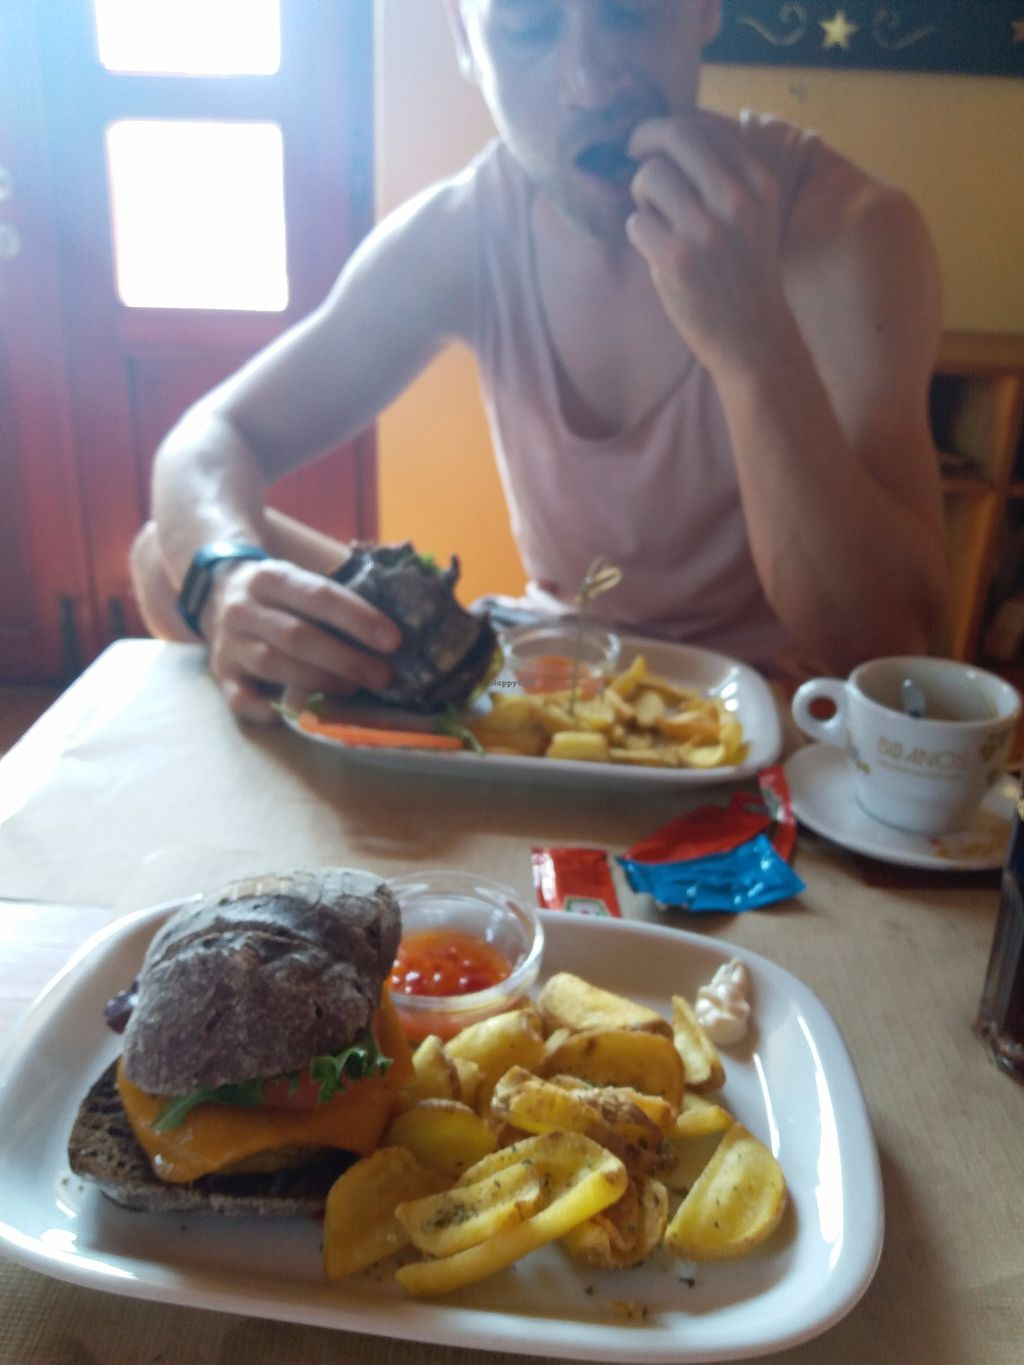 """Photo of Dromedário  by <a href=""""/members/profile/Libbytes"""">Libbytes</a> <br/>Front; falafel burger Back; Mr Bean burger <br/> September 12, 2017  - <a href='/contact/abuse/image/82949/303608'>Report</a>"""